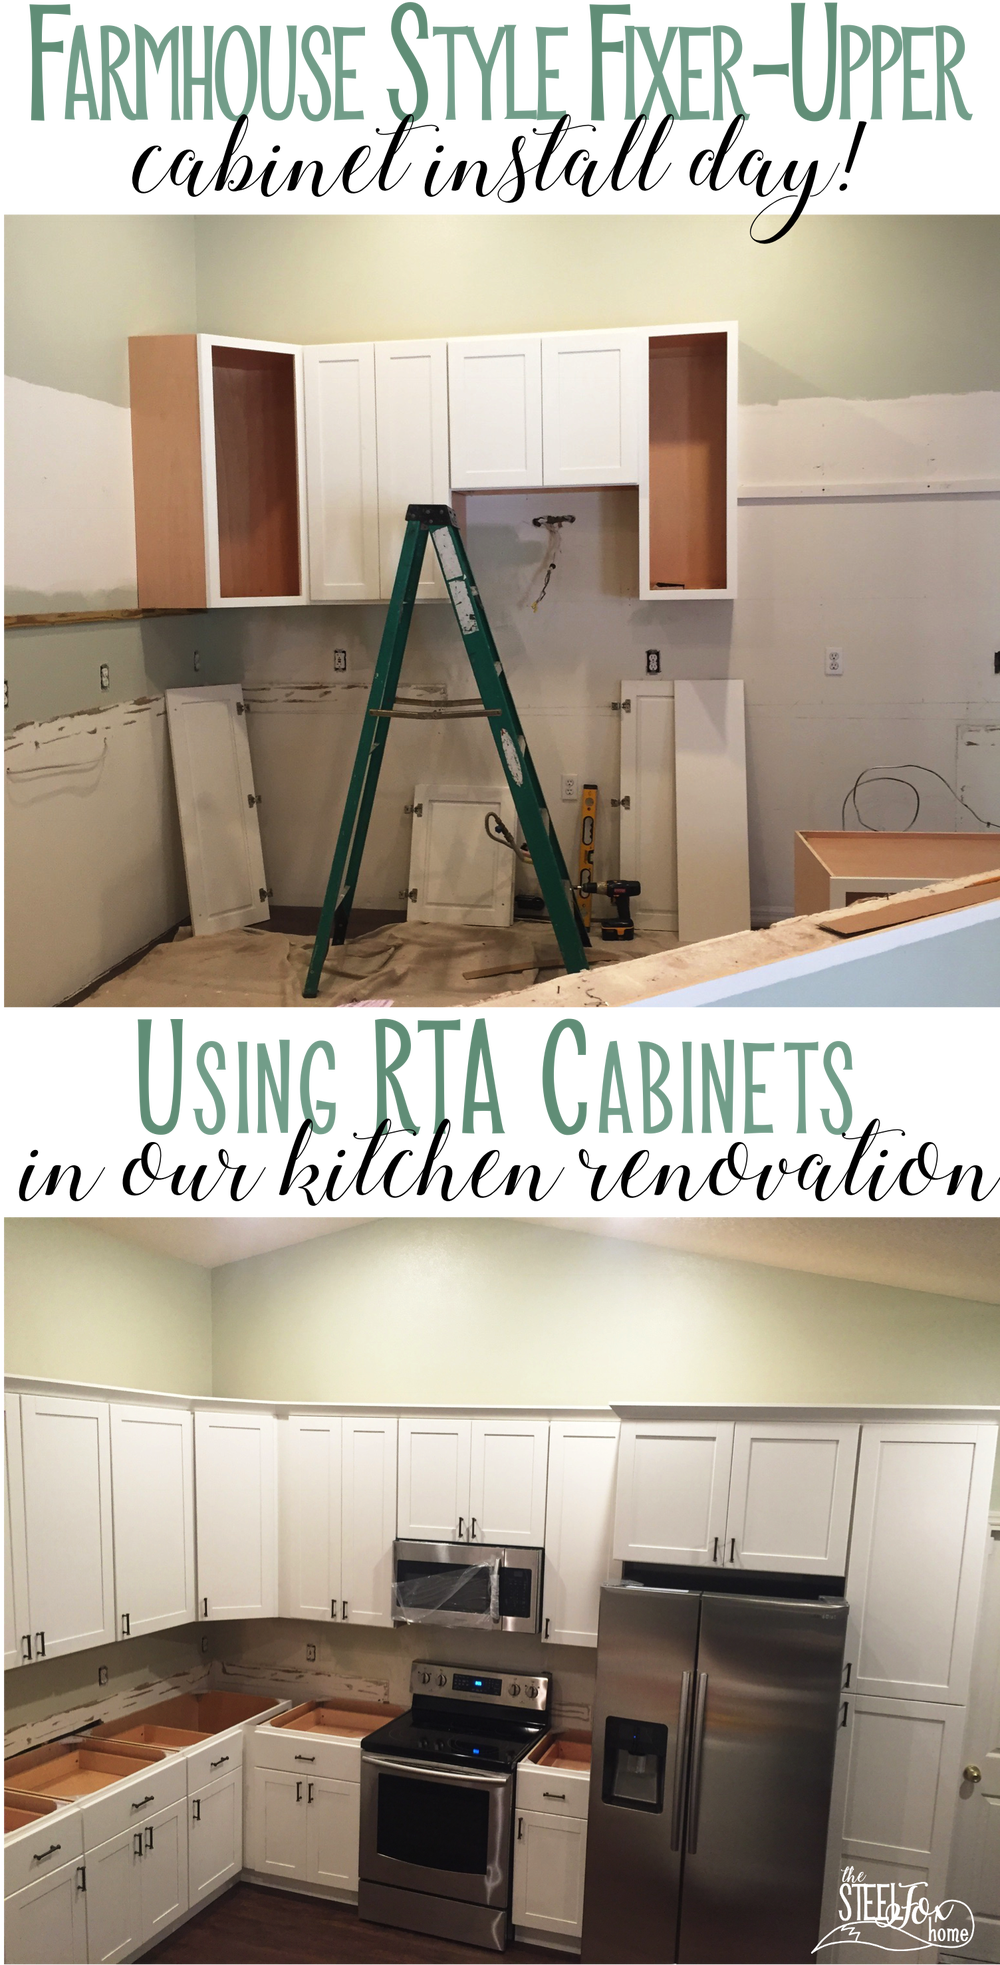 Finally Getting Kitchen Cabinets Installed In Our Fixer Upper Shaker White Farmhouse Kitchen Cabinets Rta Ready Installing Cabinets Kitchen Cabinets Cabinet